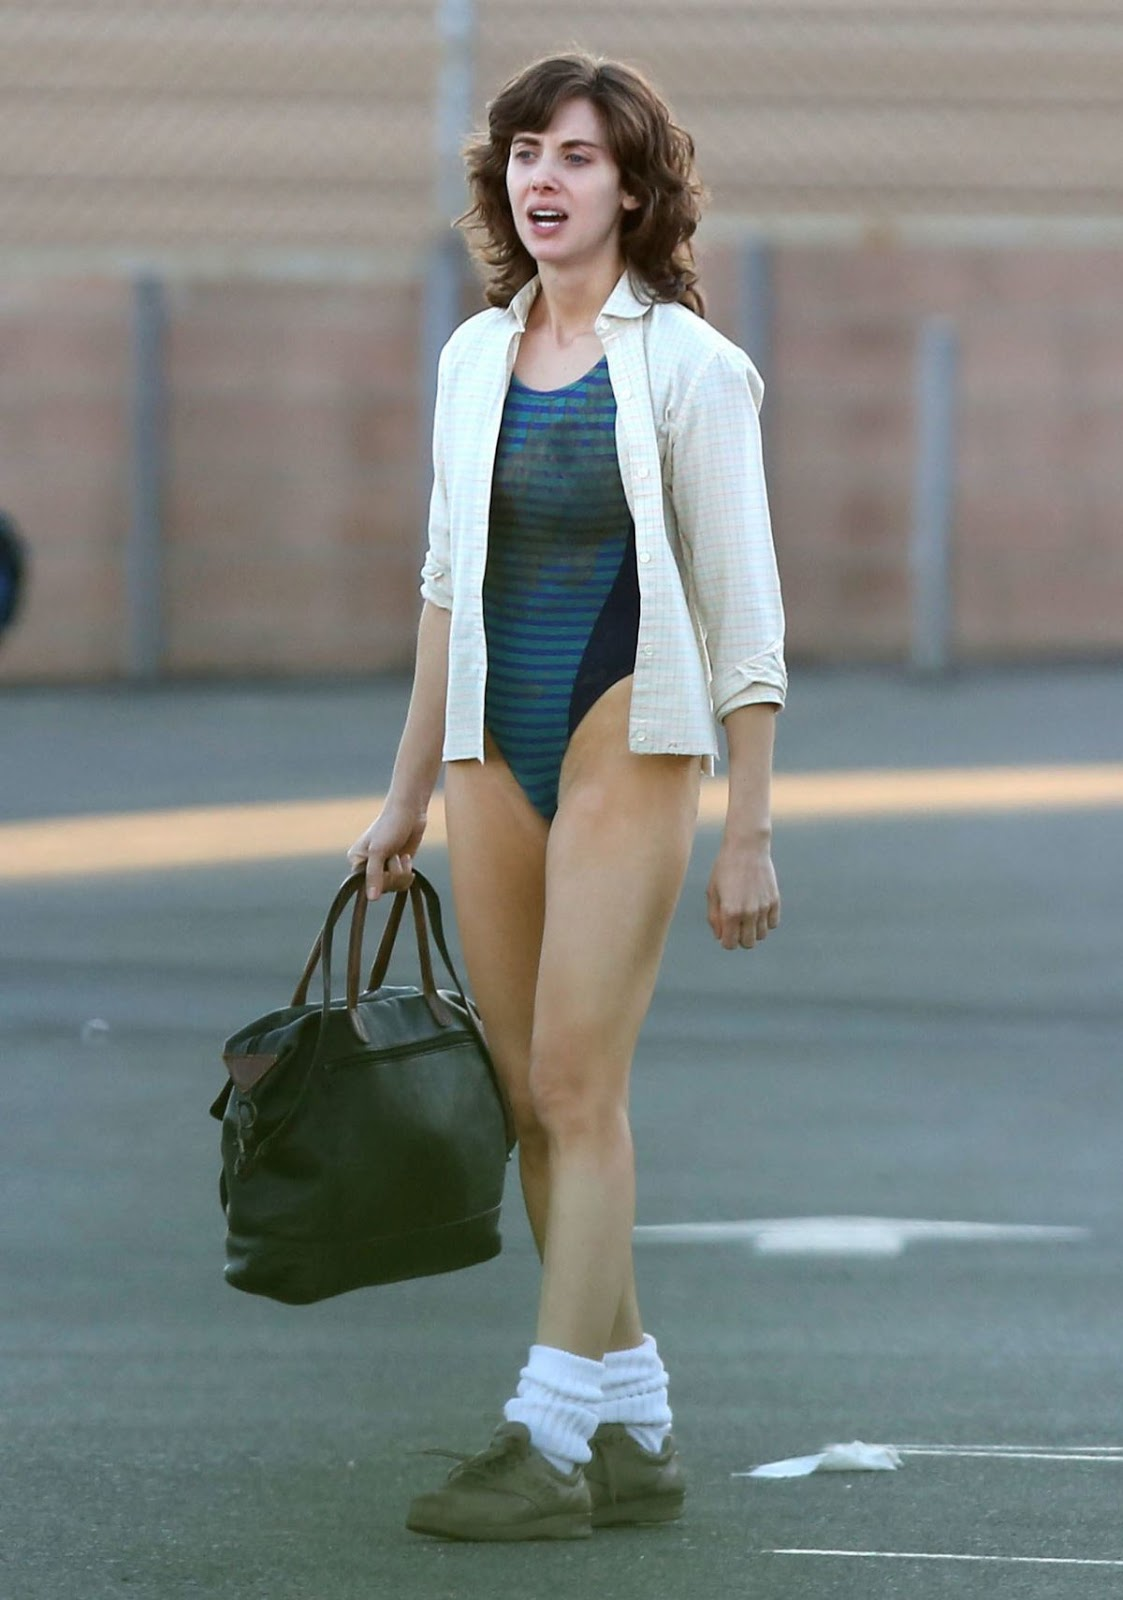 Alison Brie On the Set Of 'G.L.O.W.'